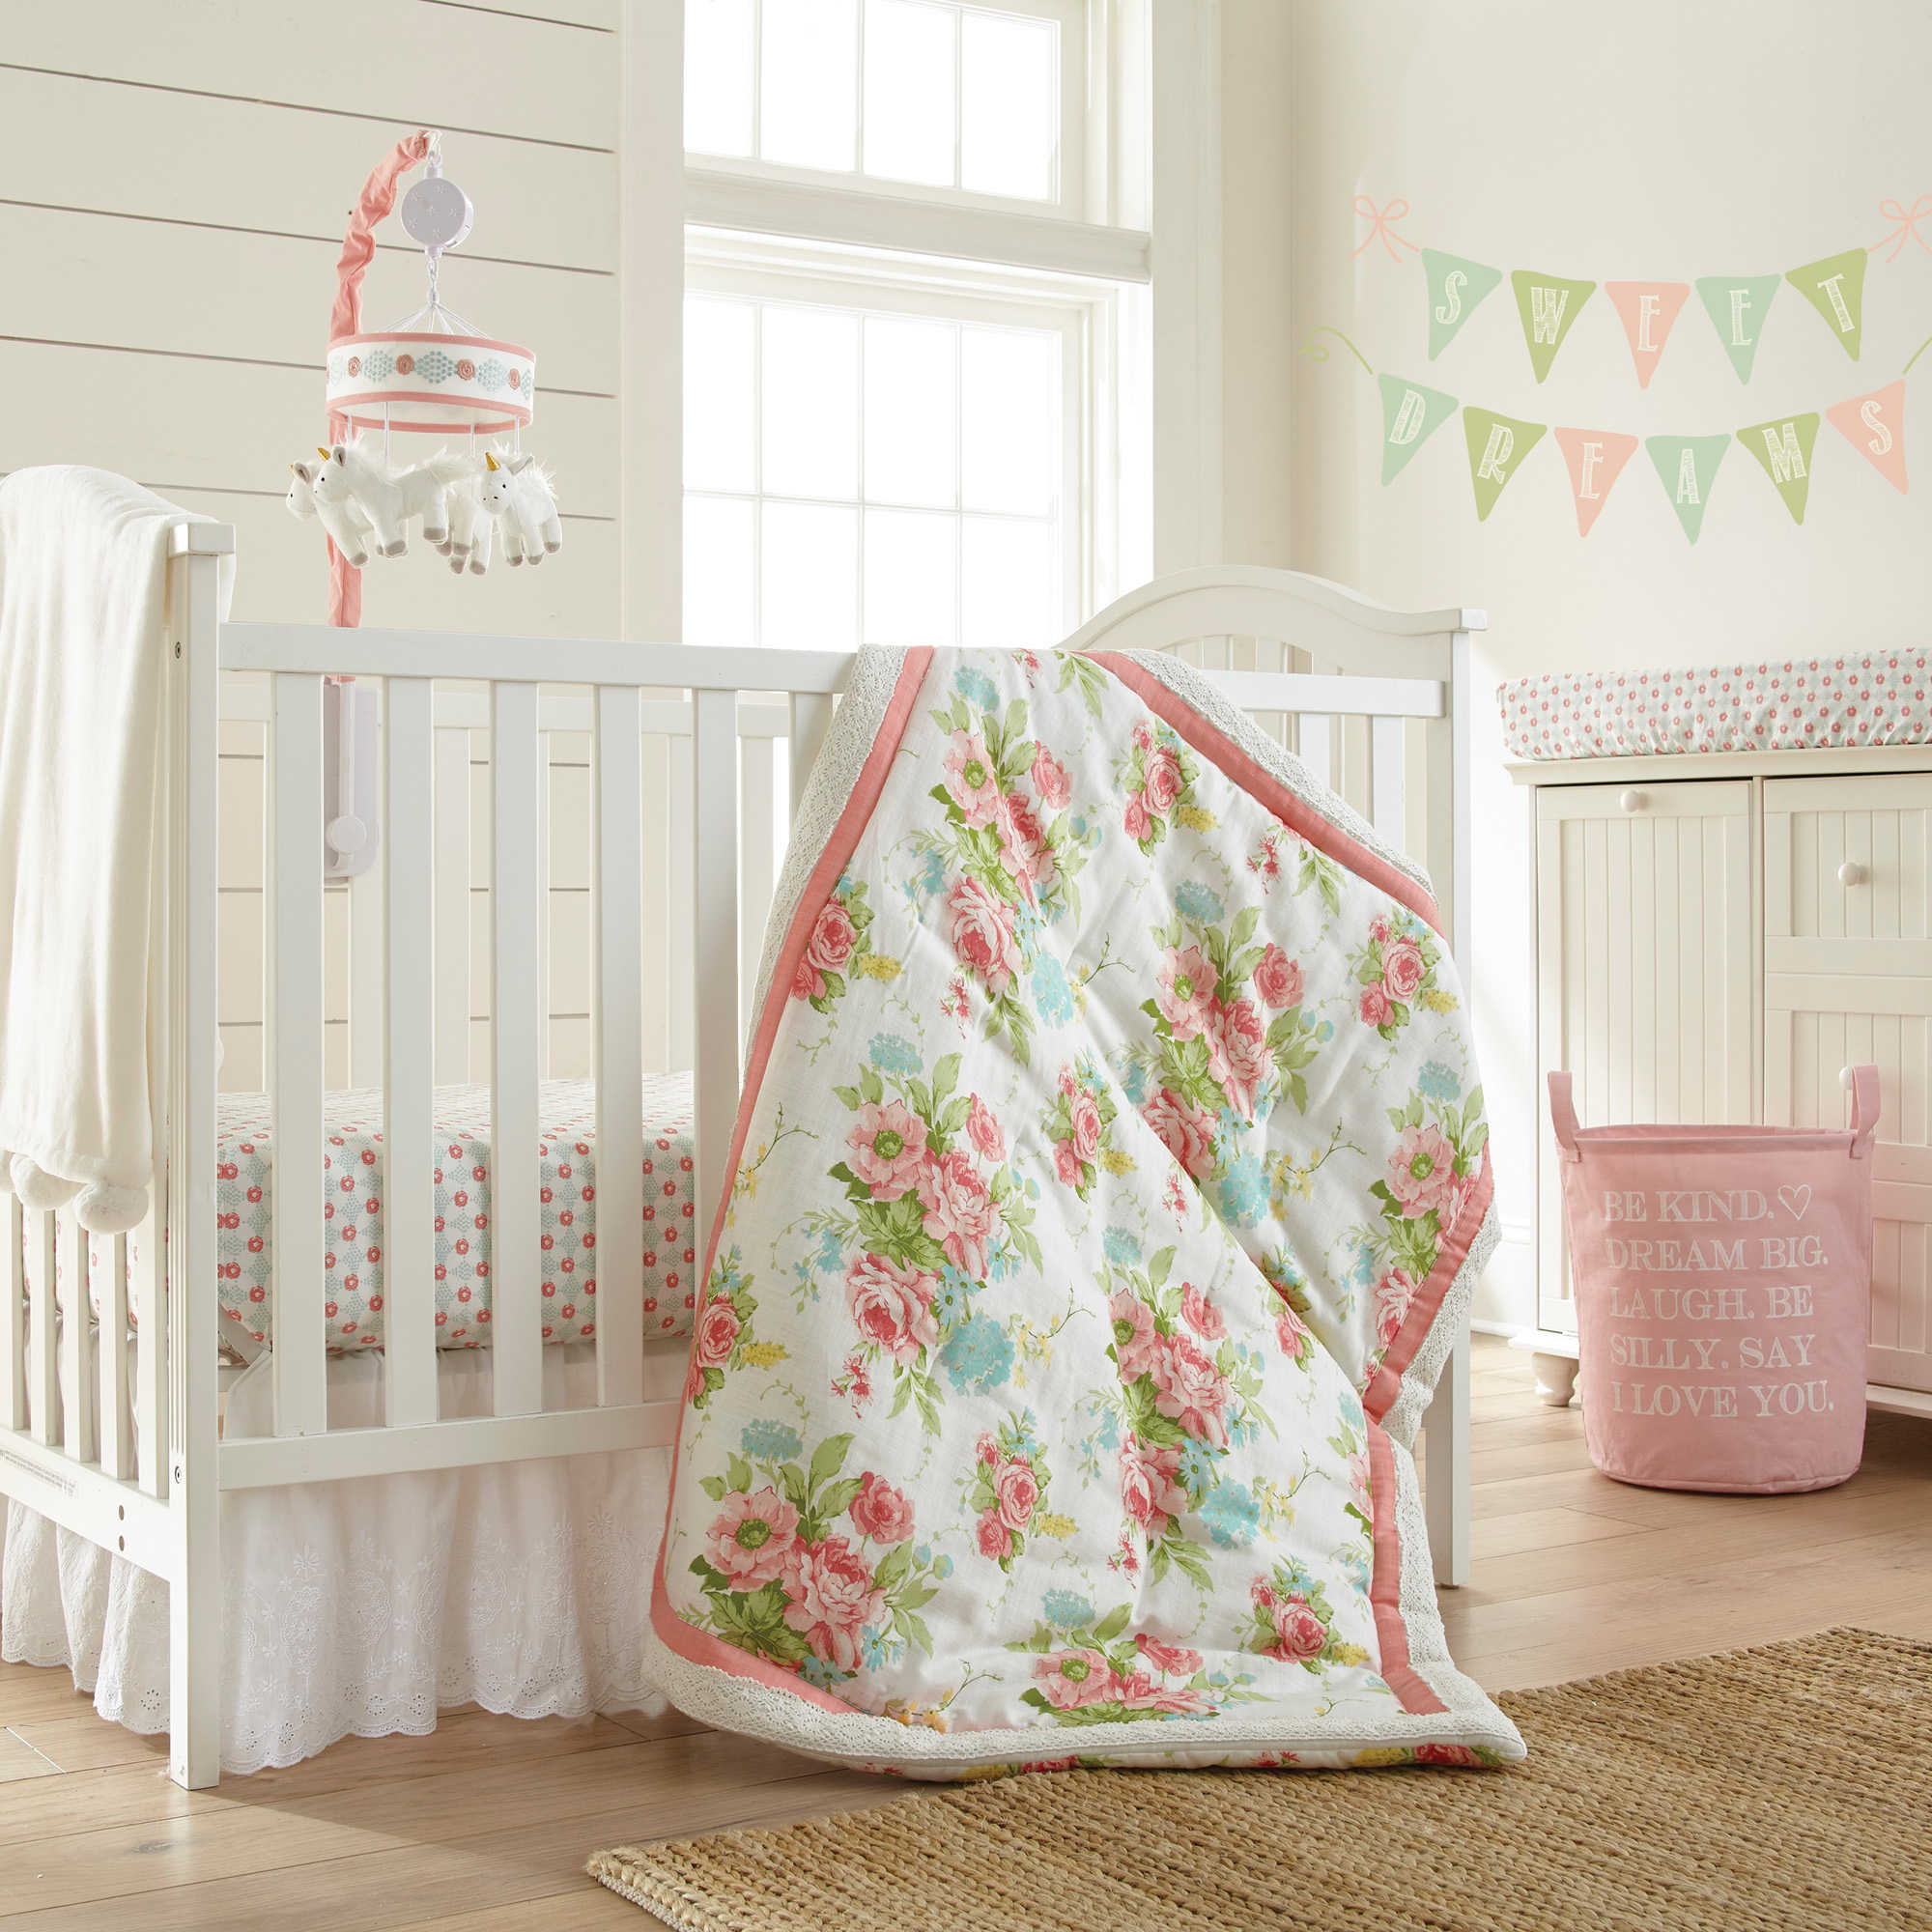 Baby cribs bedding for boys - Image Of Levtex Baby Emma Crib Bedding Collection